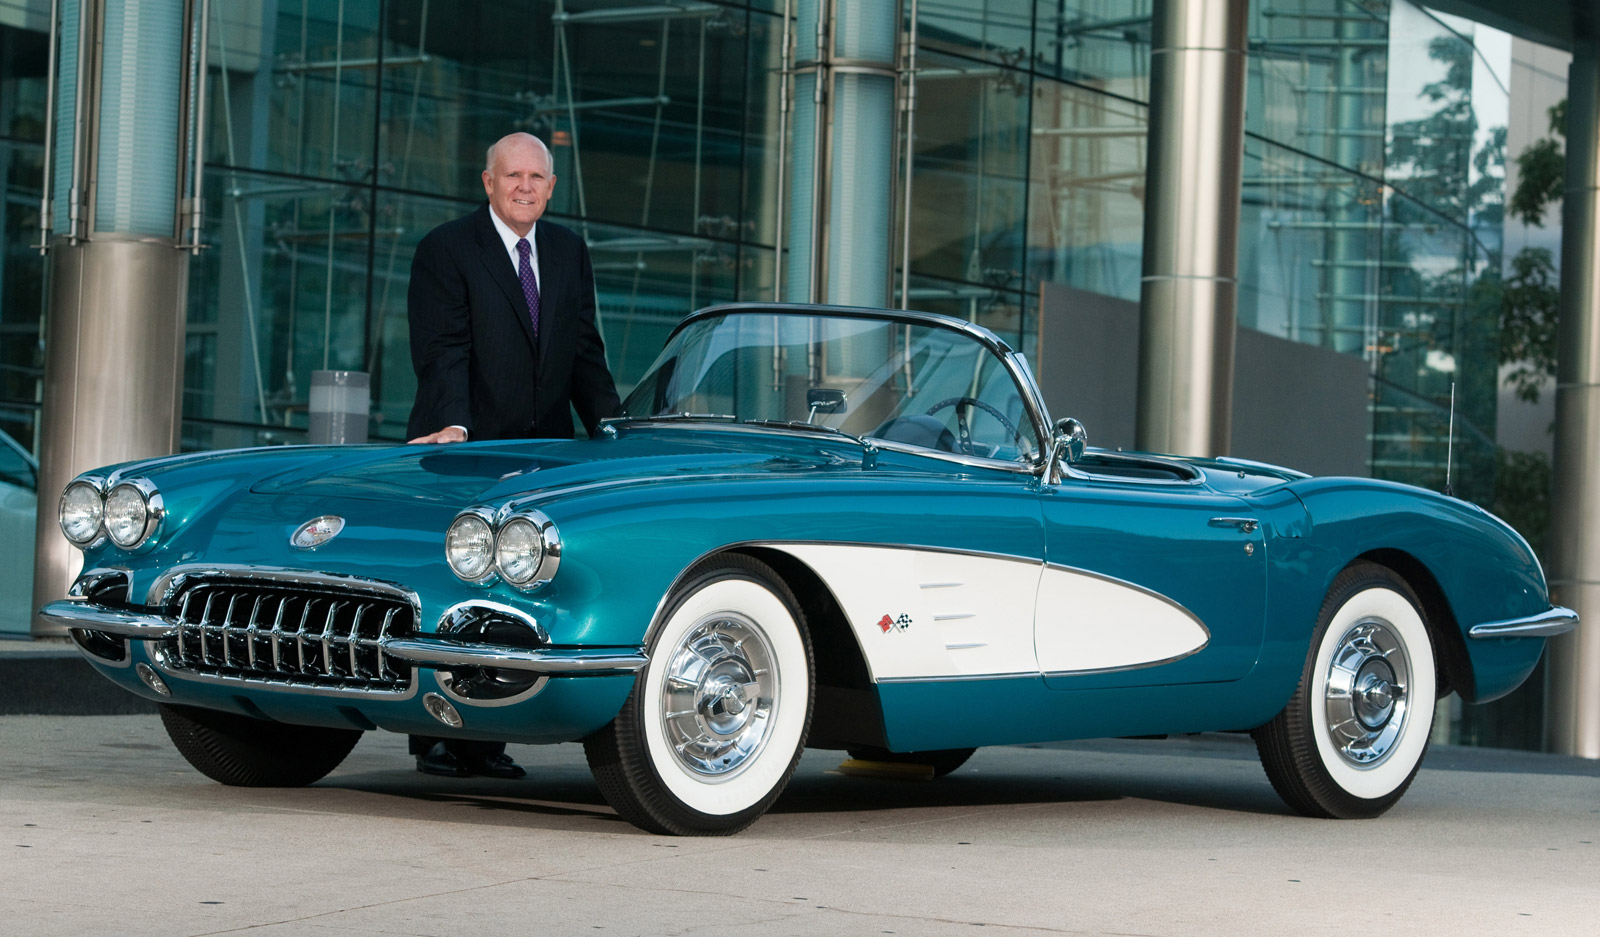 Gm Ceo S Personal 1958 Chevy Corvette To Be Auctioned For